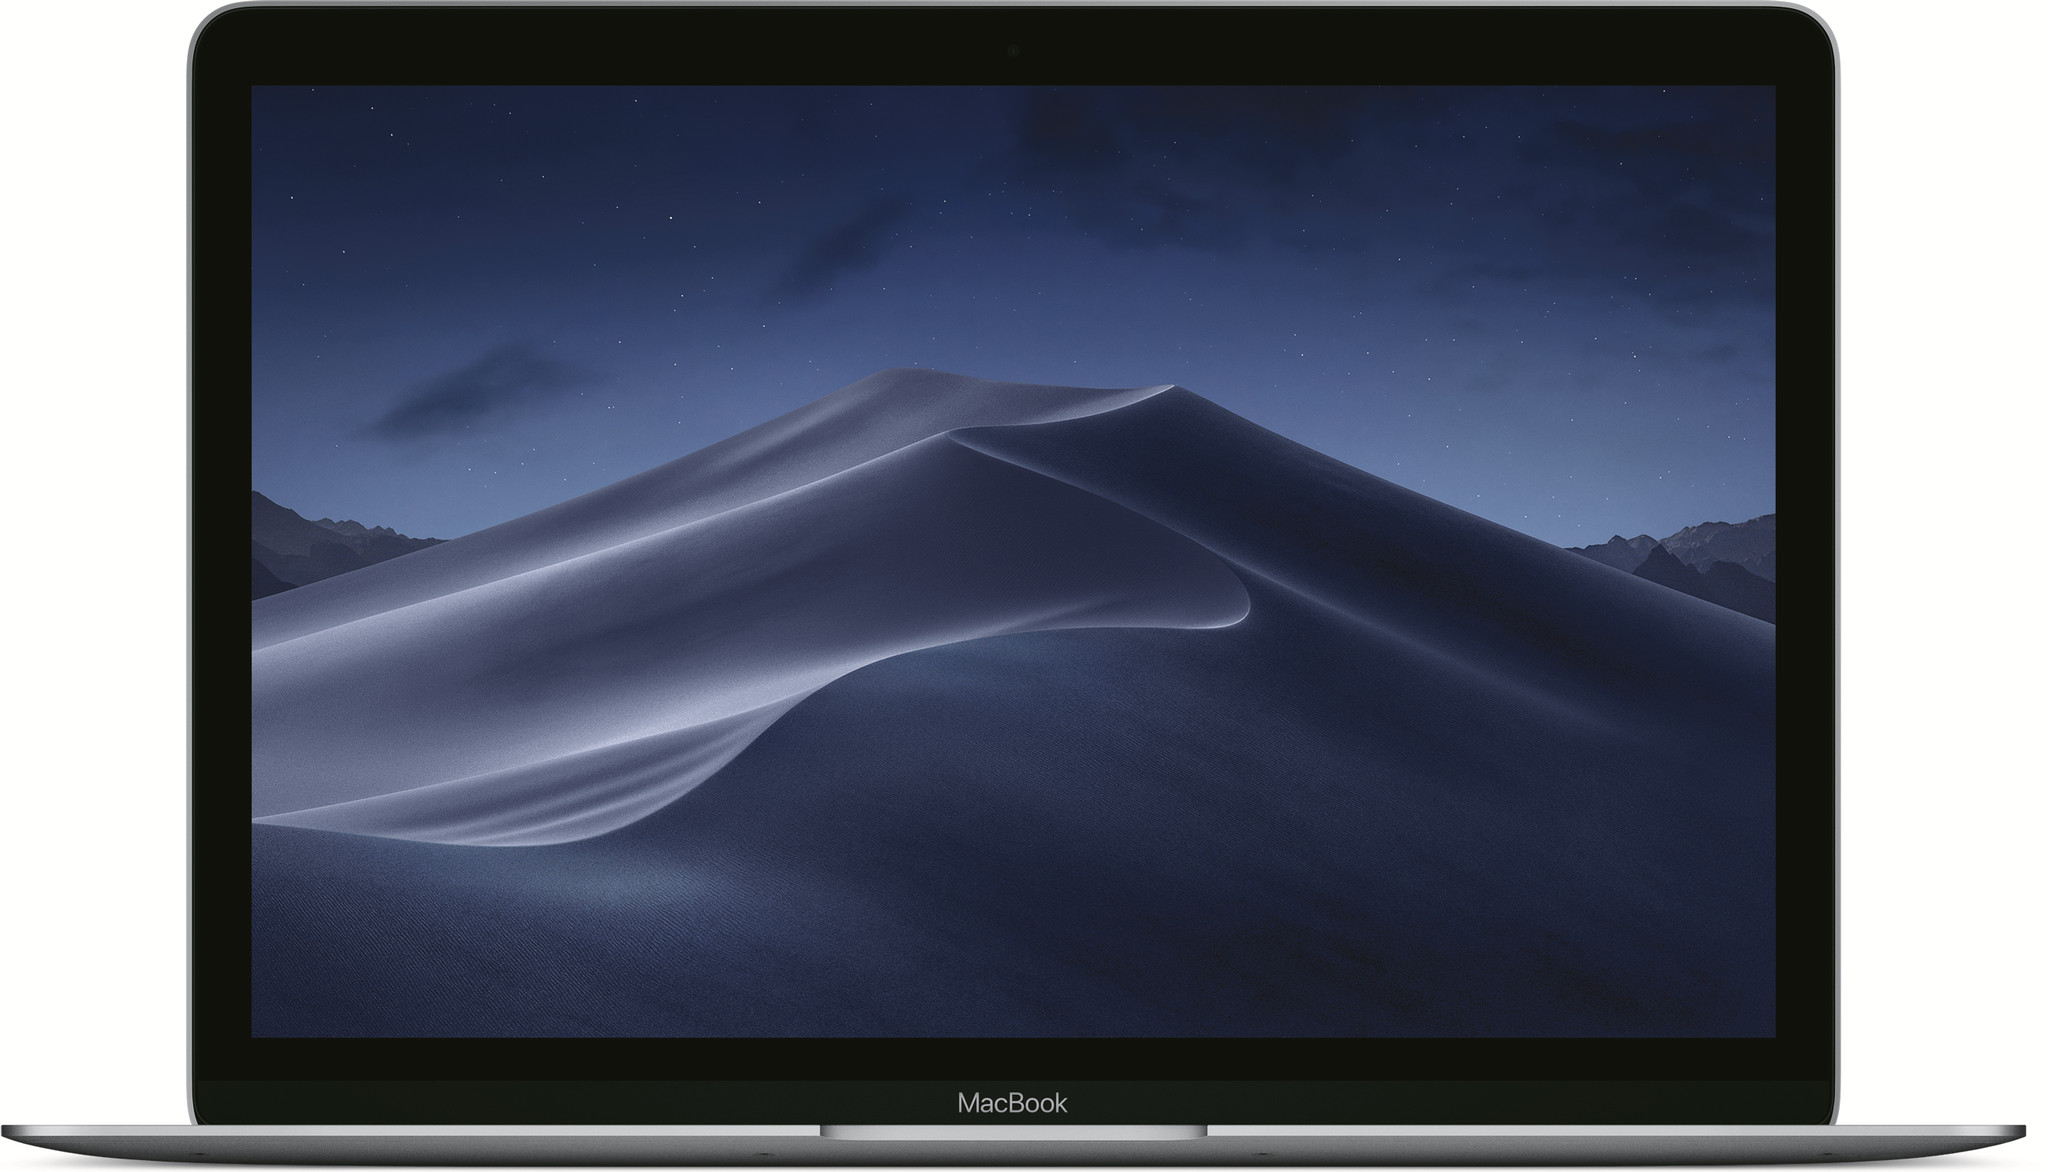 MacBook 12 inch Product image